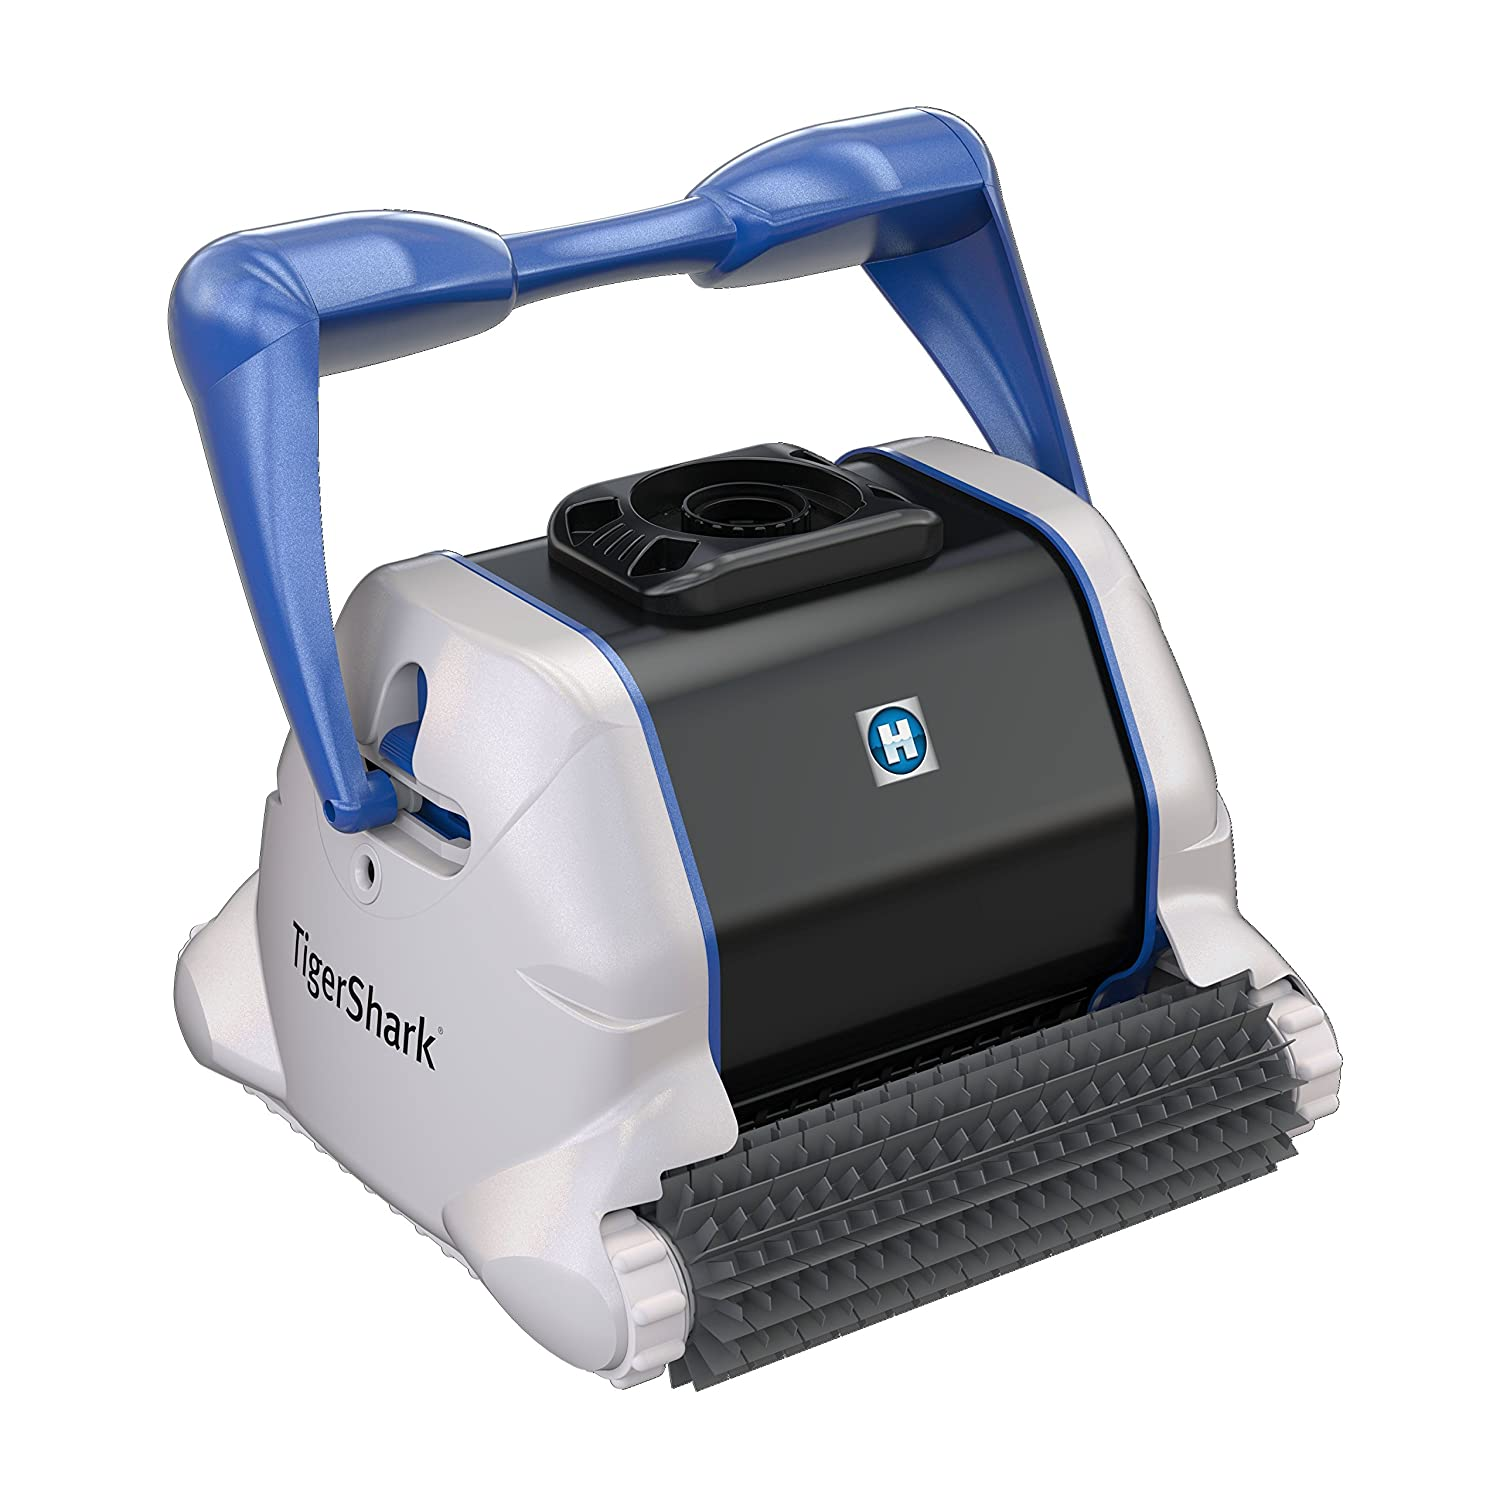 Hayward RC9950CUB TigerShark Robotic Pool Vacuum Automatic Pool Cleaner